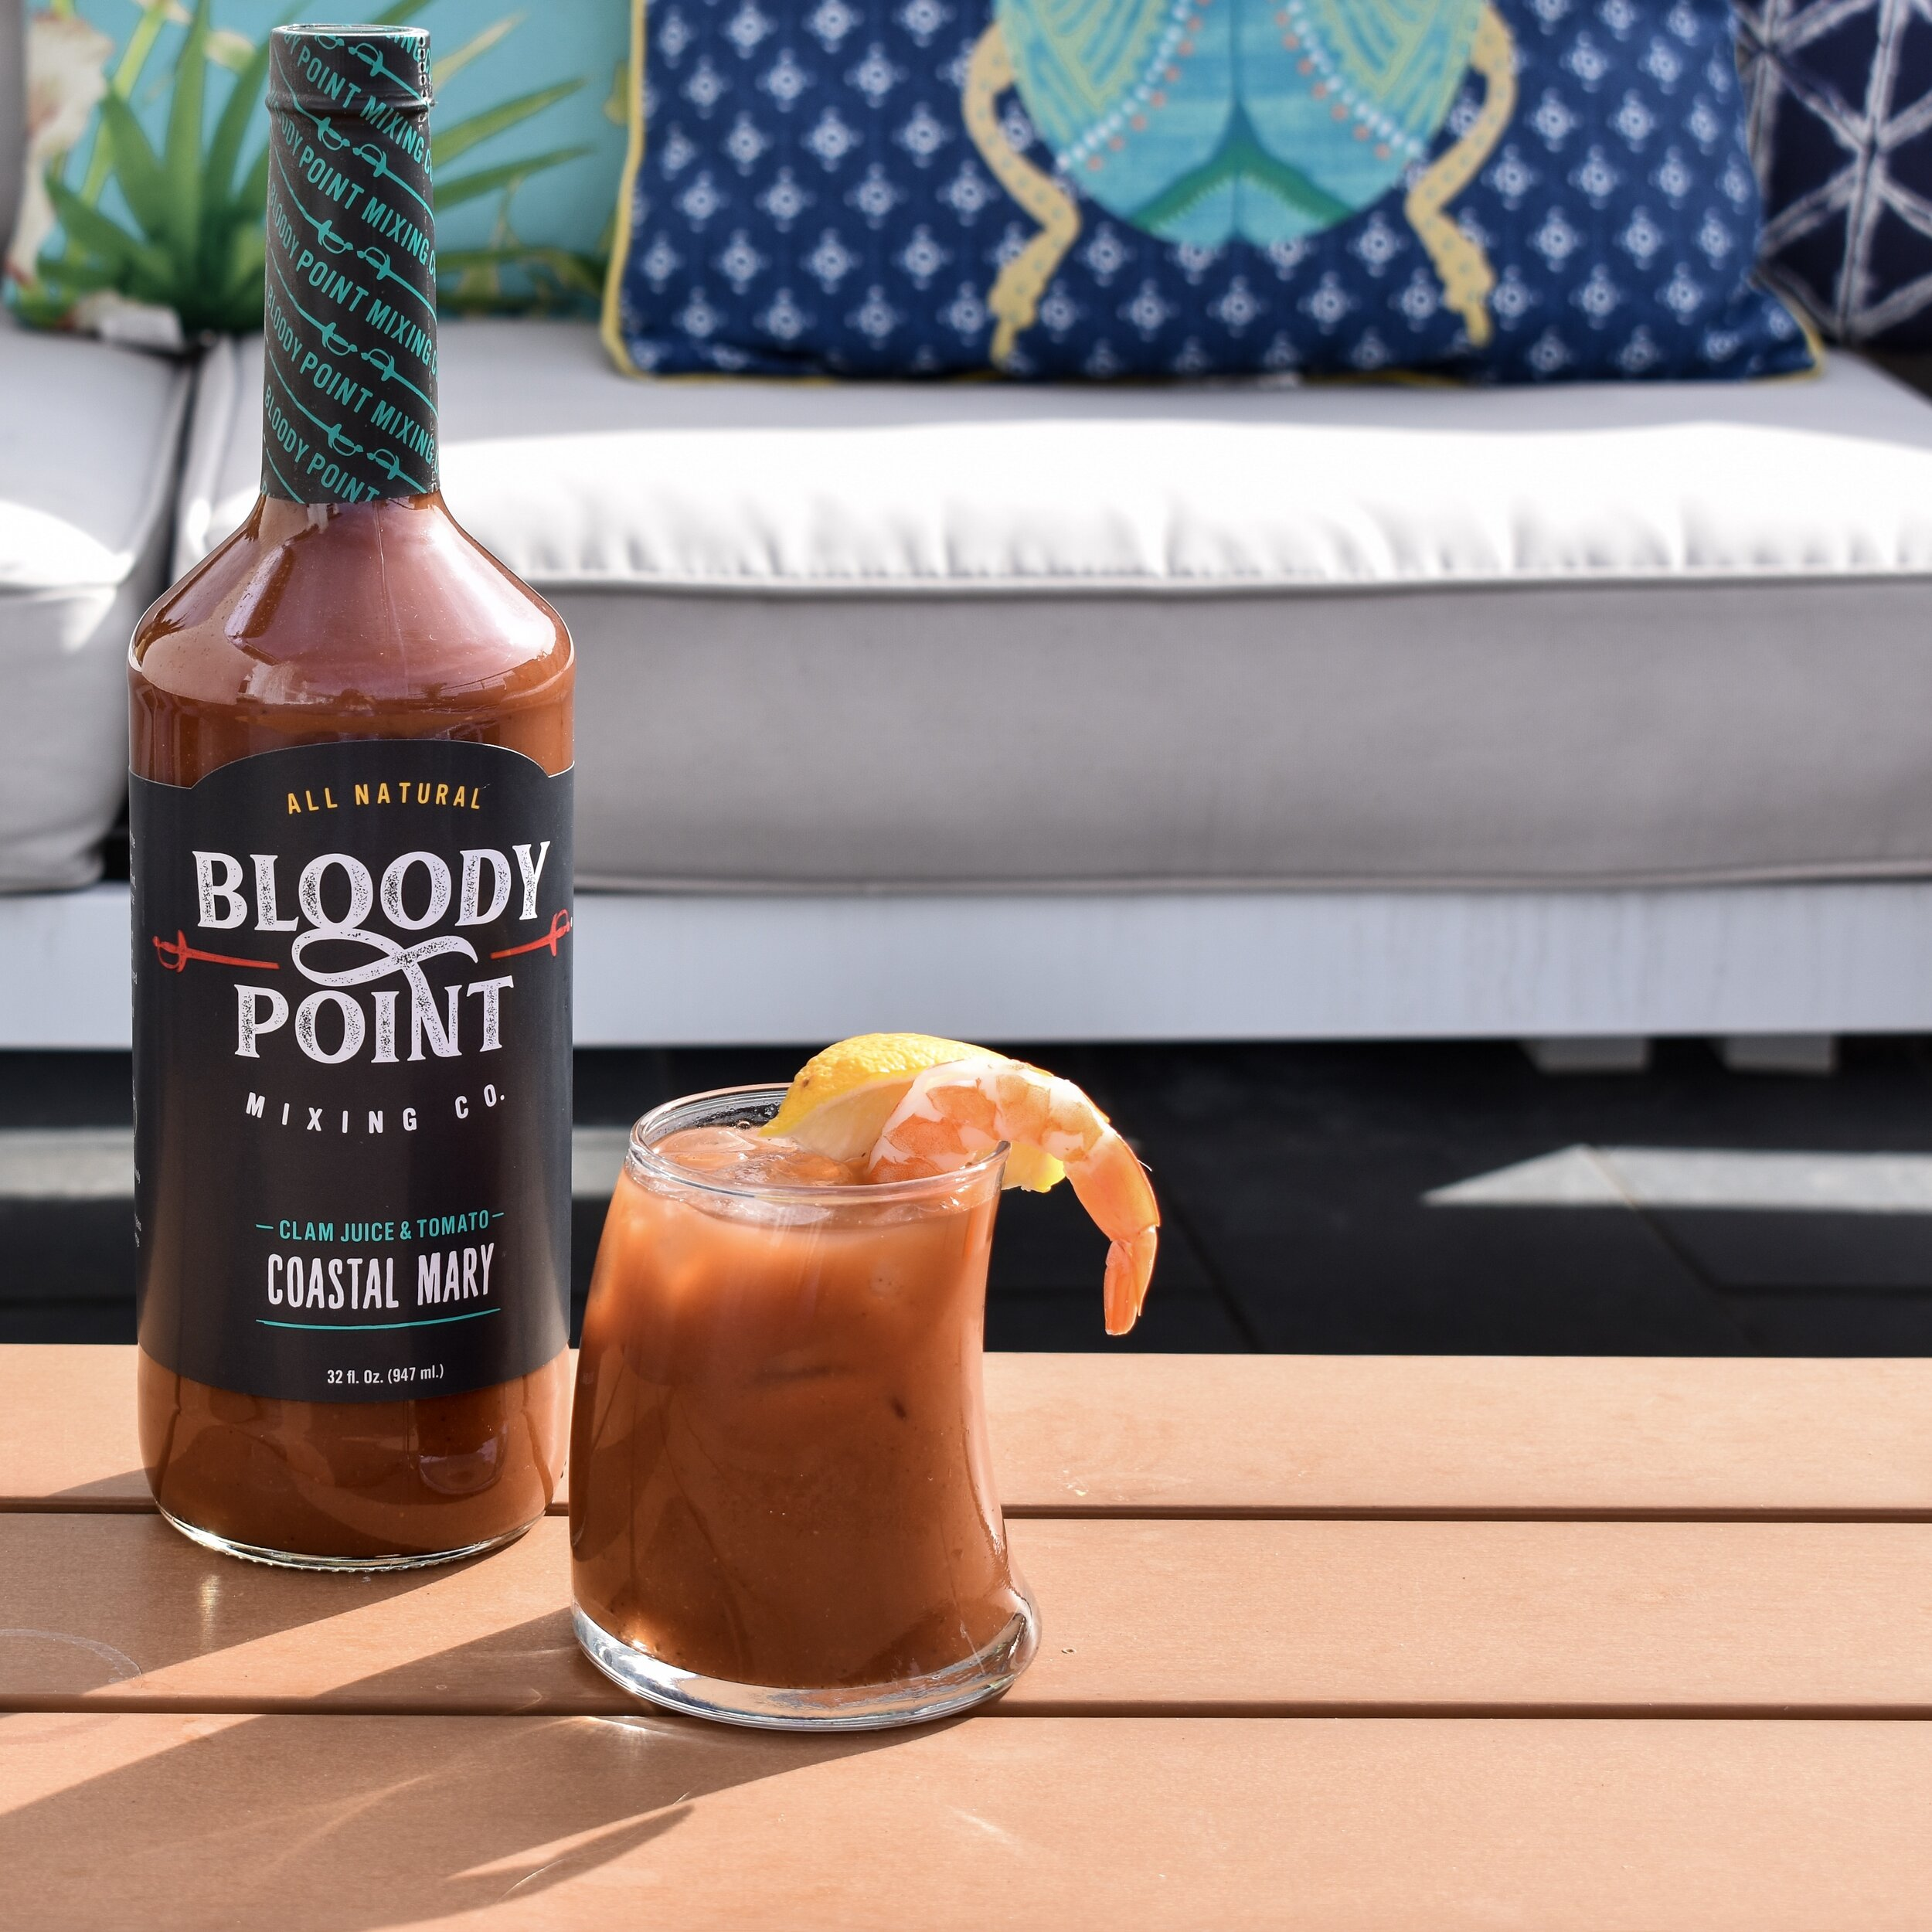 bloody point mixing co refreshing gin bloody mary recipe bloody mary obsessed.jpg